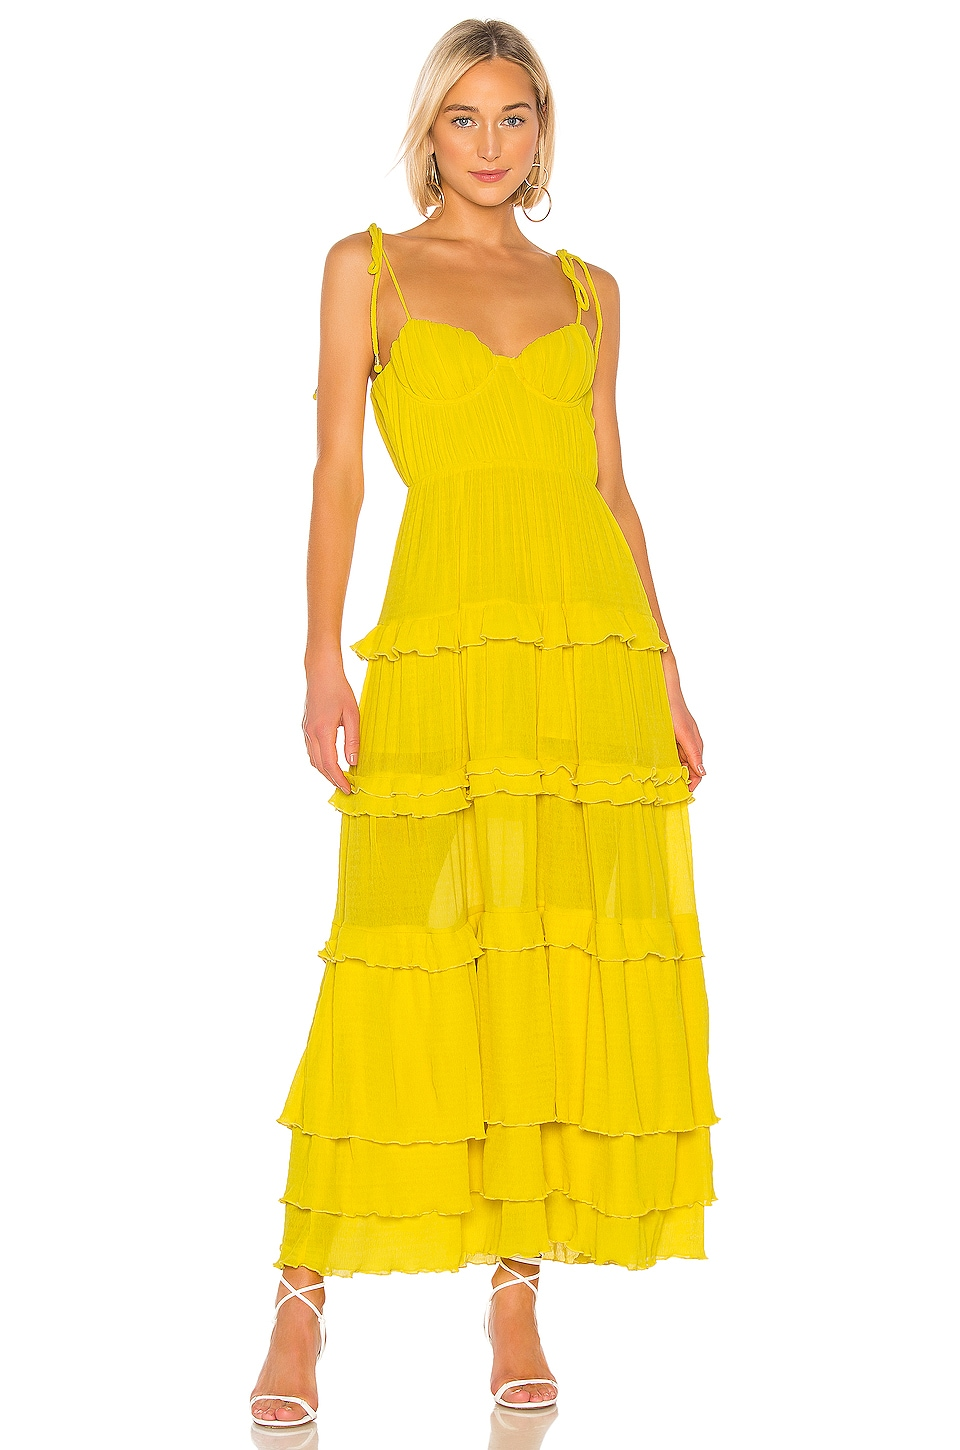 Tularosa Tinsley Dress in Vibrant Yellow